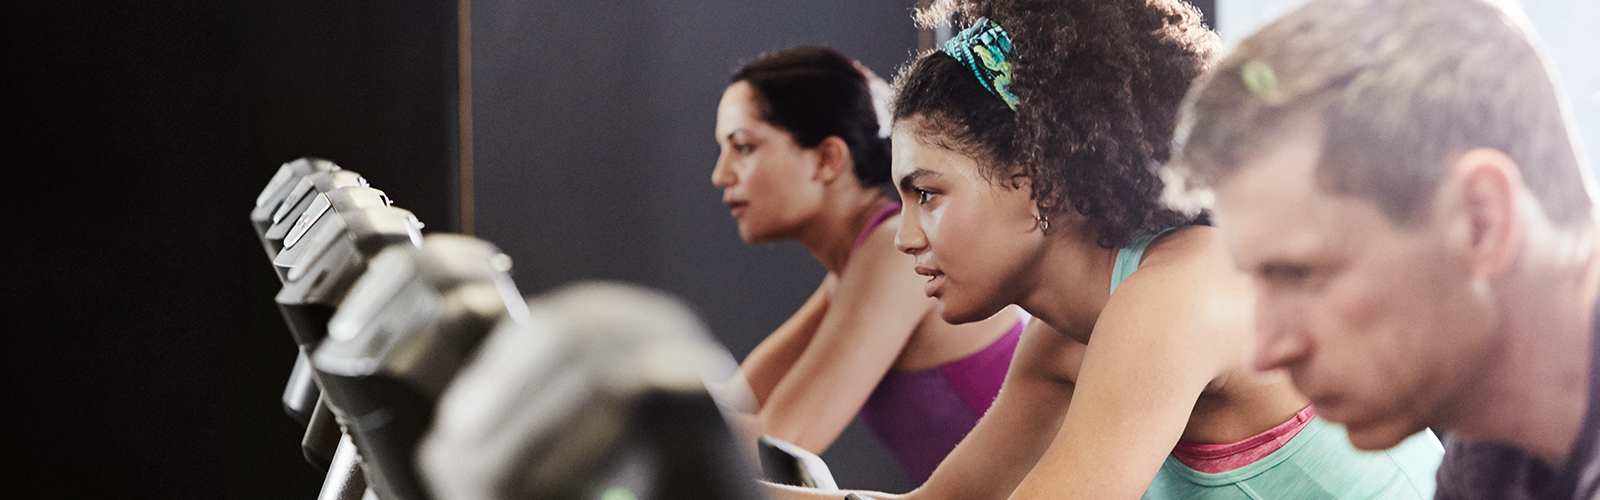 PureGym Website Banner Images 1600x600